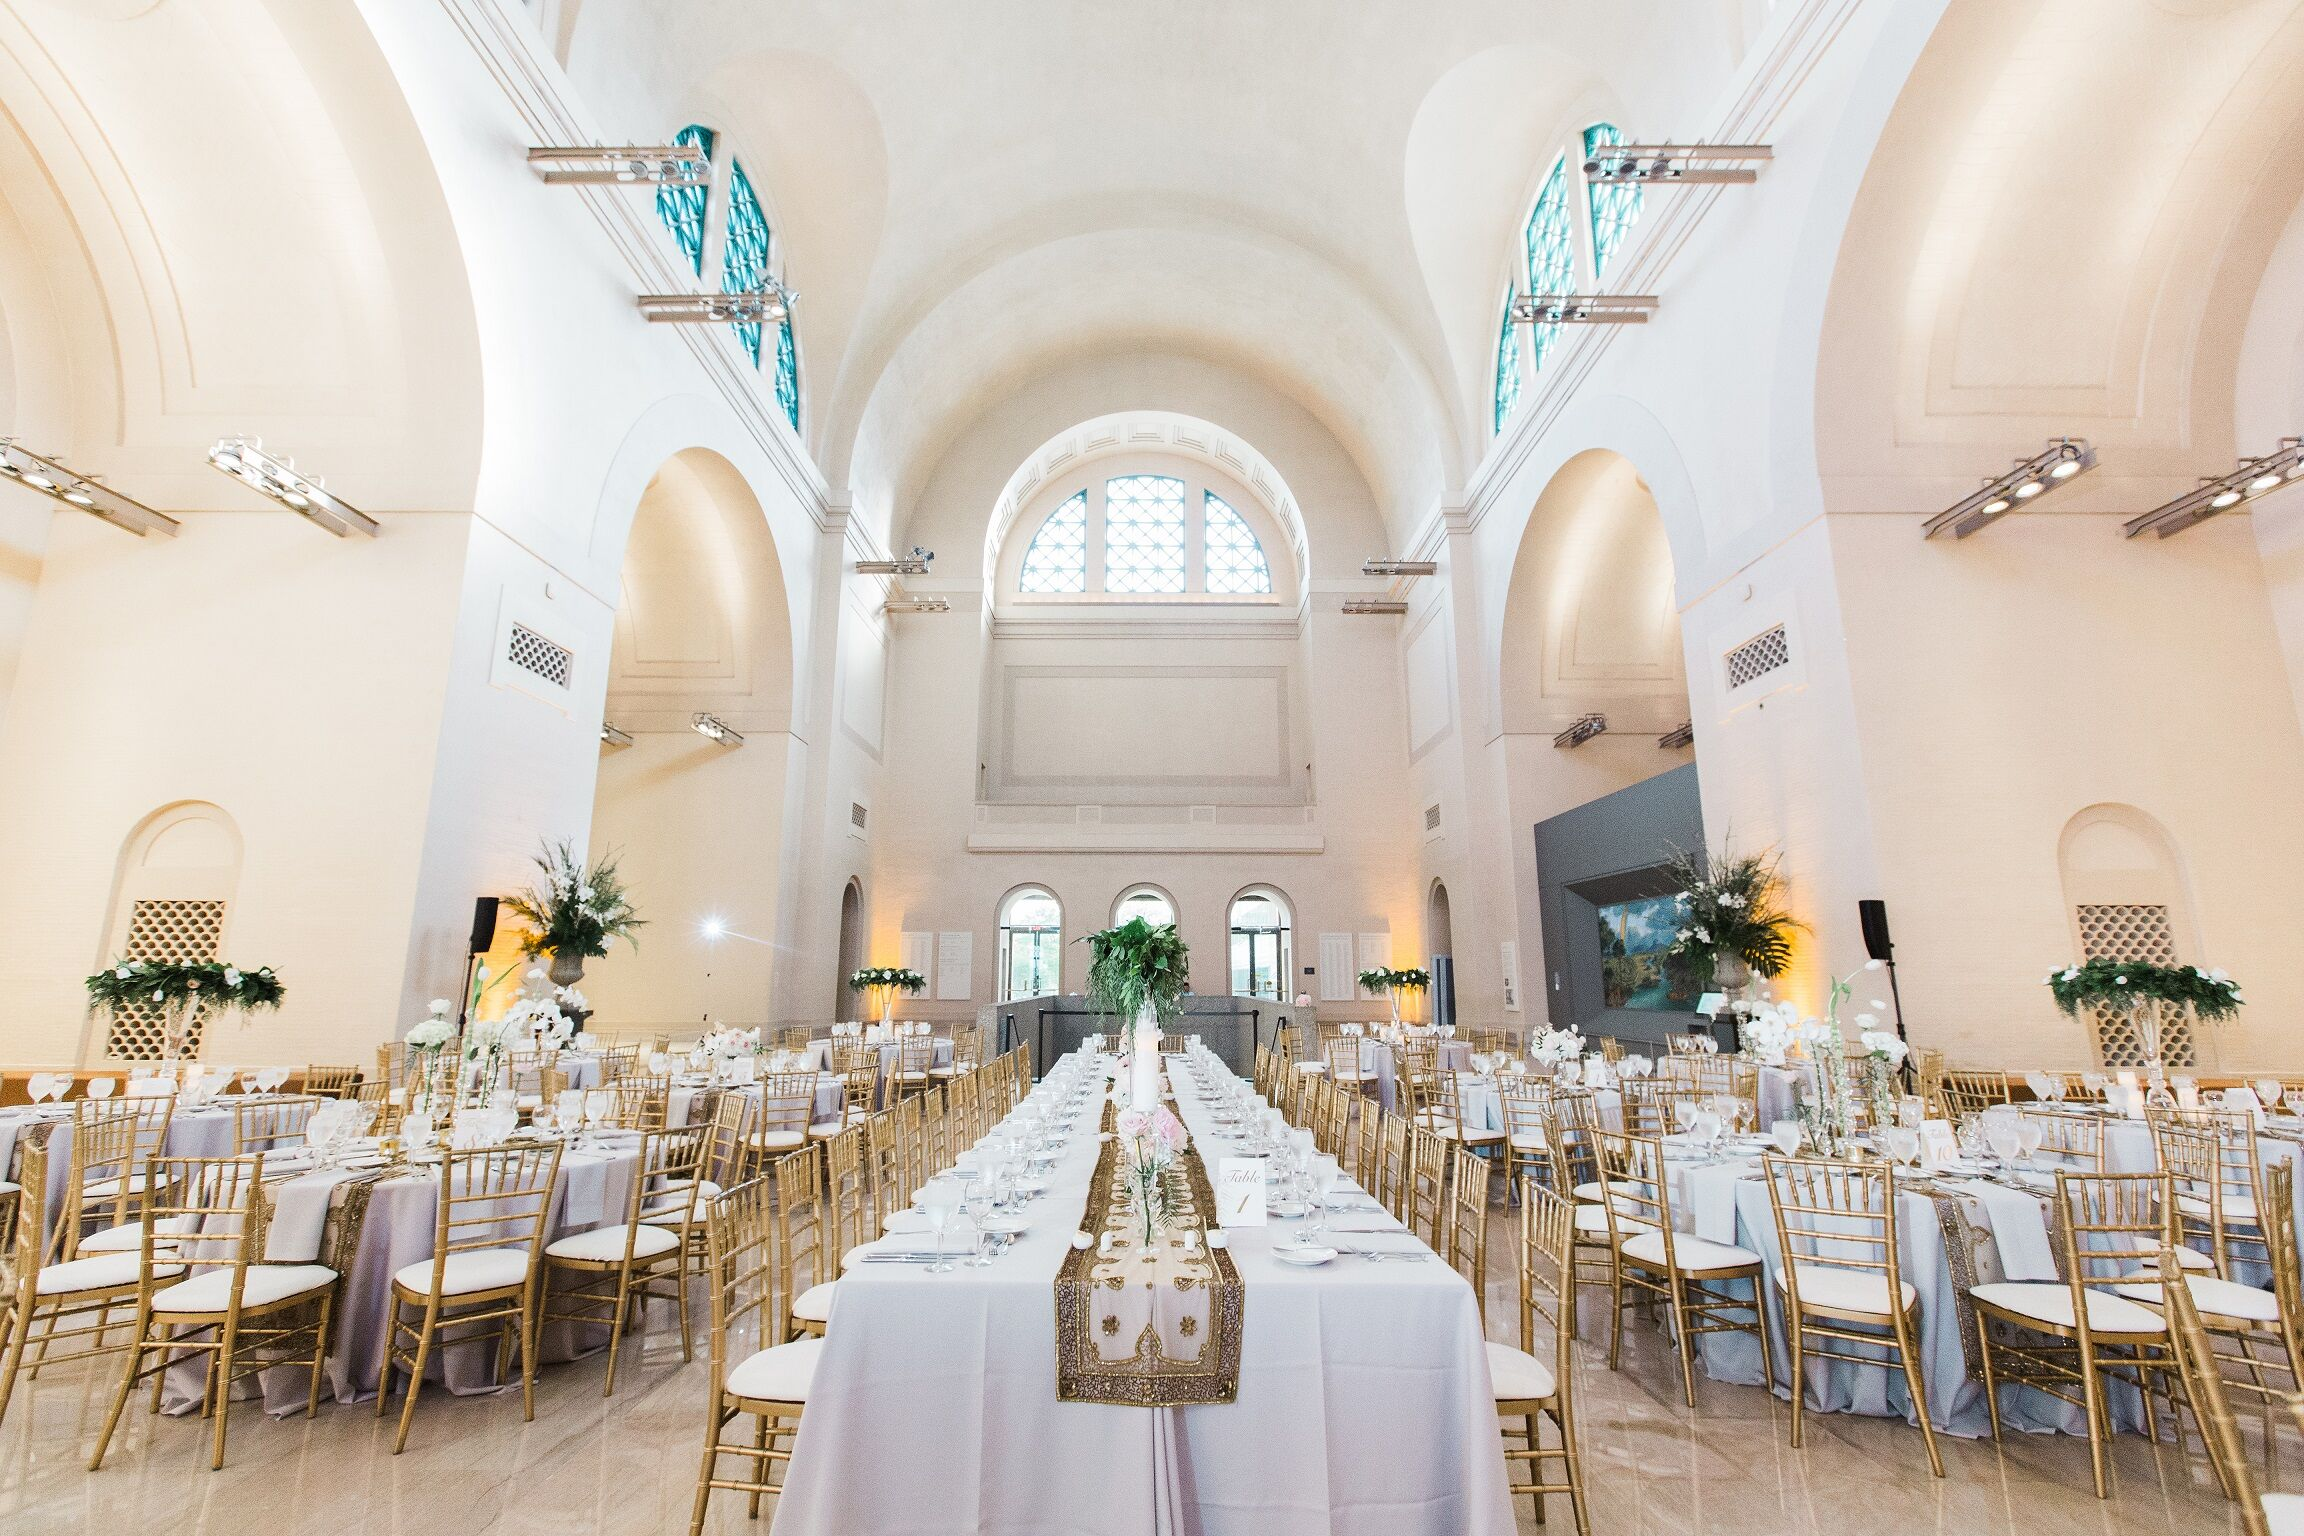 Wedding Reception Venues in St. Louis, MO - The Knot